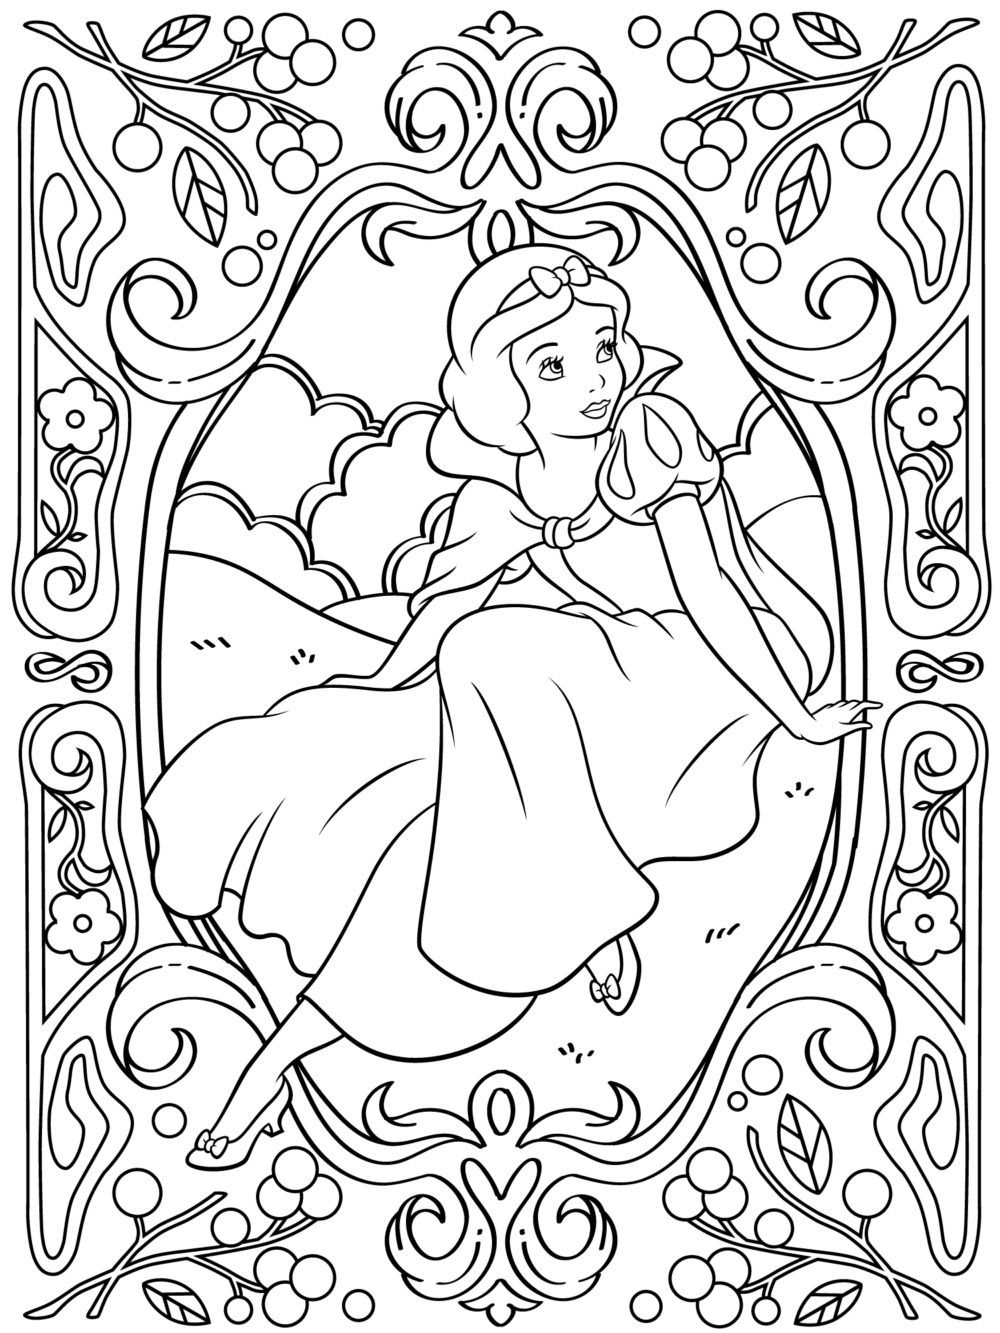 Disney coloring pages adults - Celebrate National Coloring Book Day With Adult Coloring Pages Disneyfree